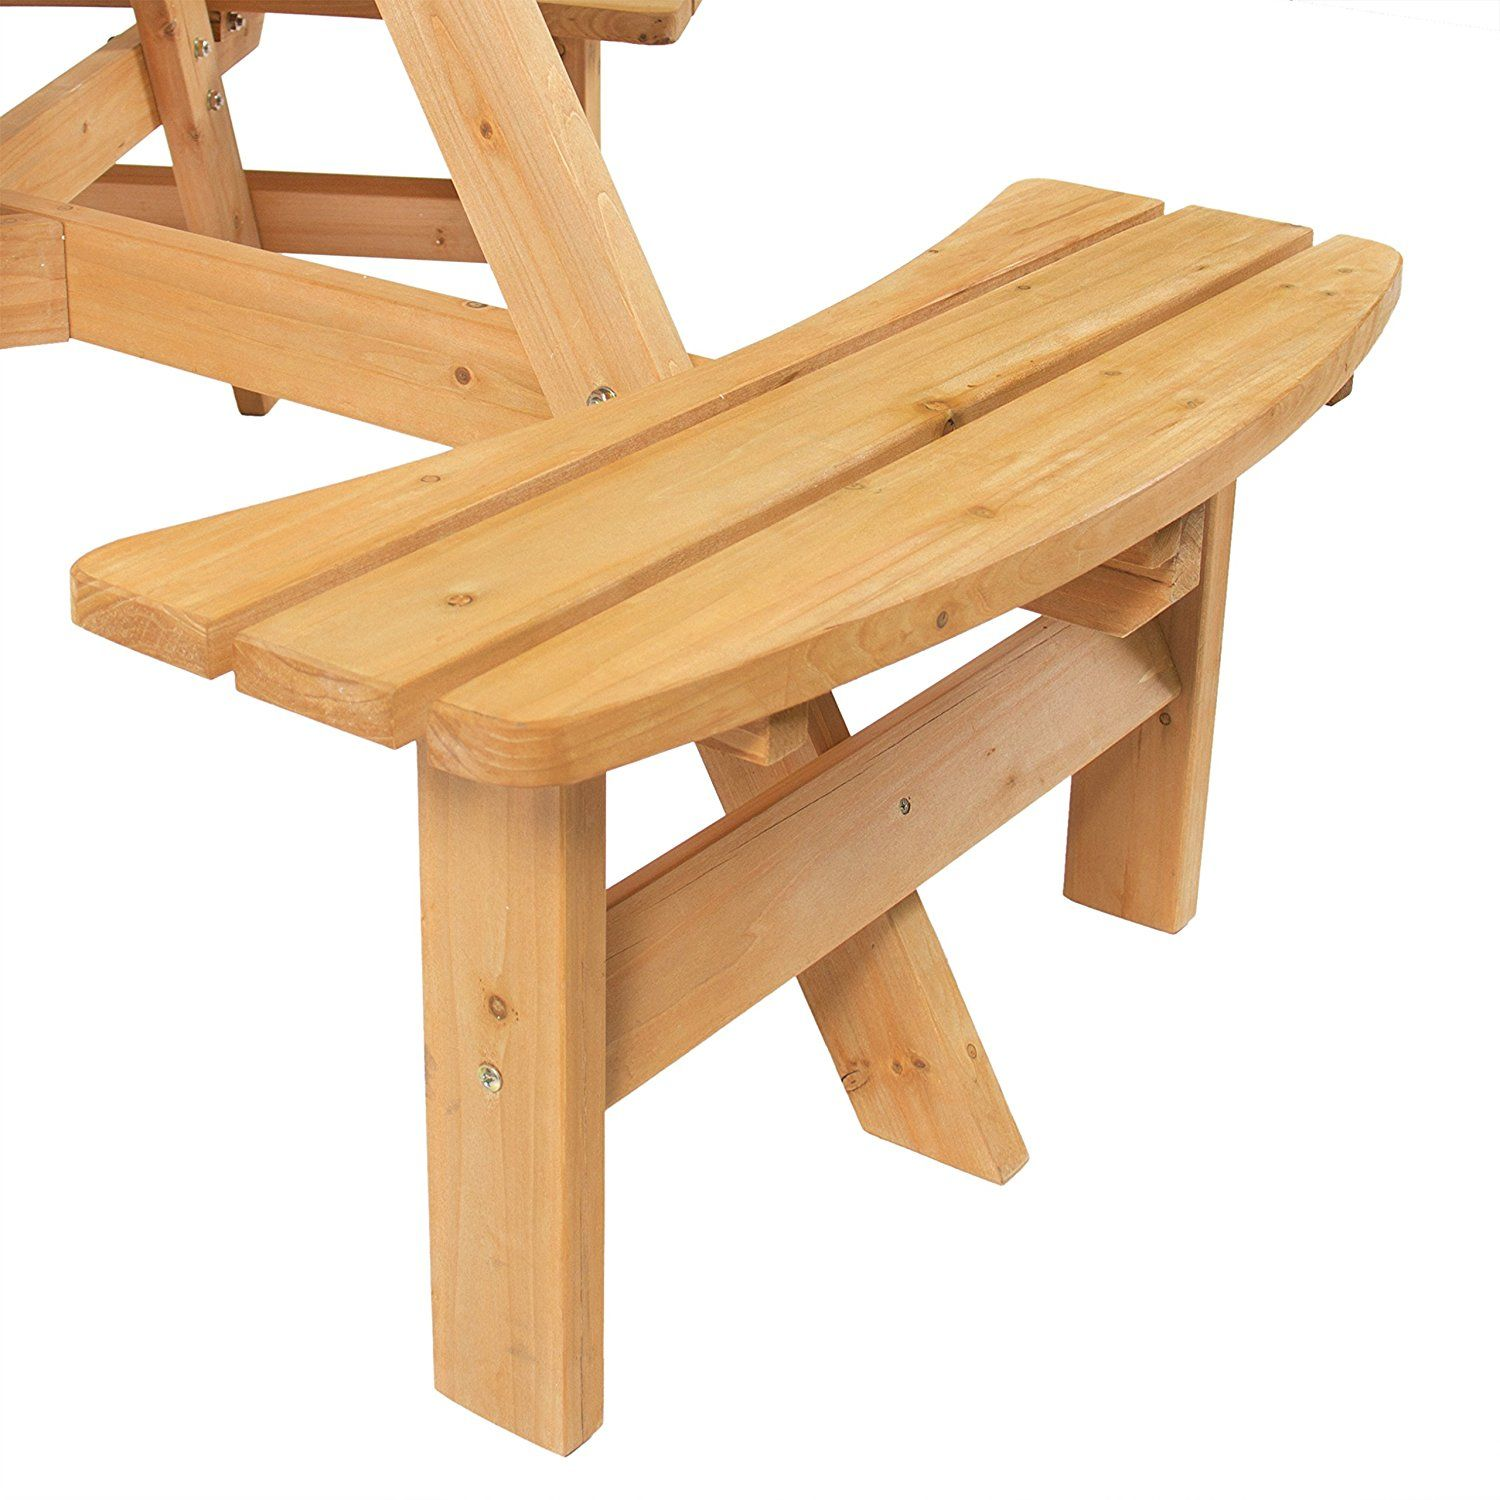 Best Wood For Picnic Table Top